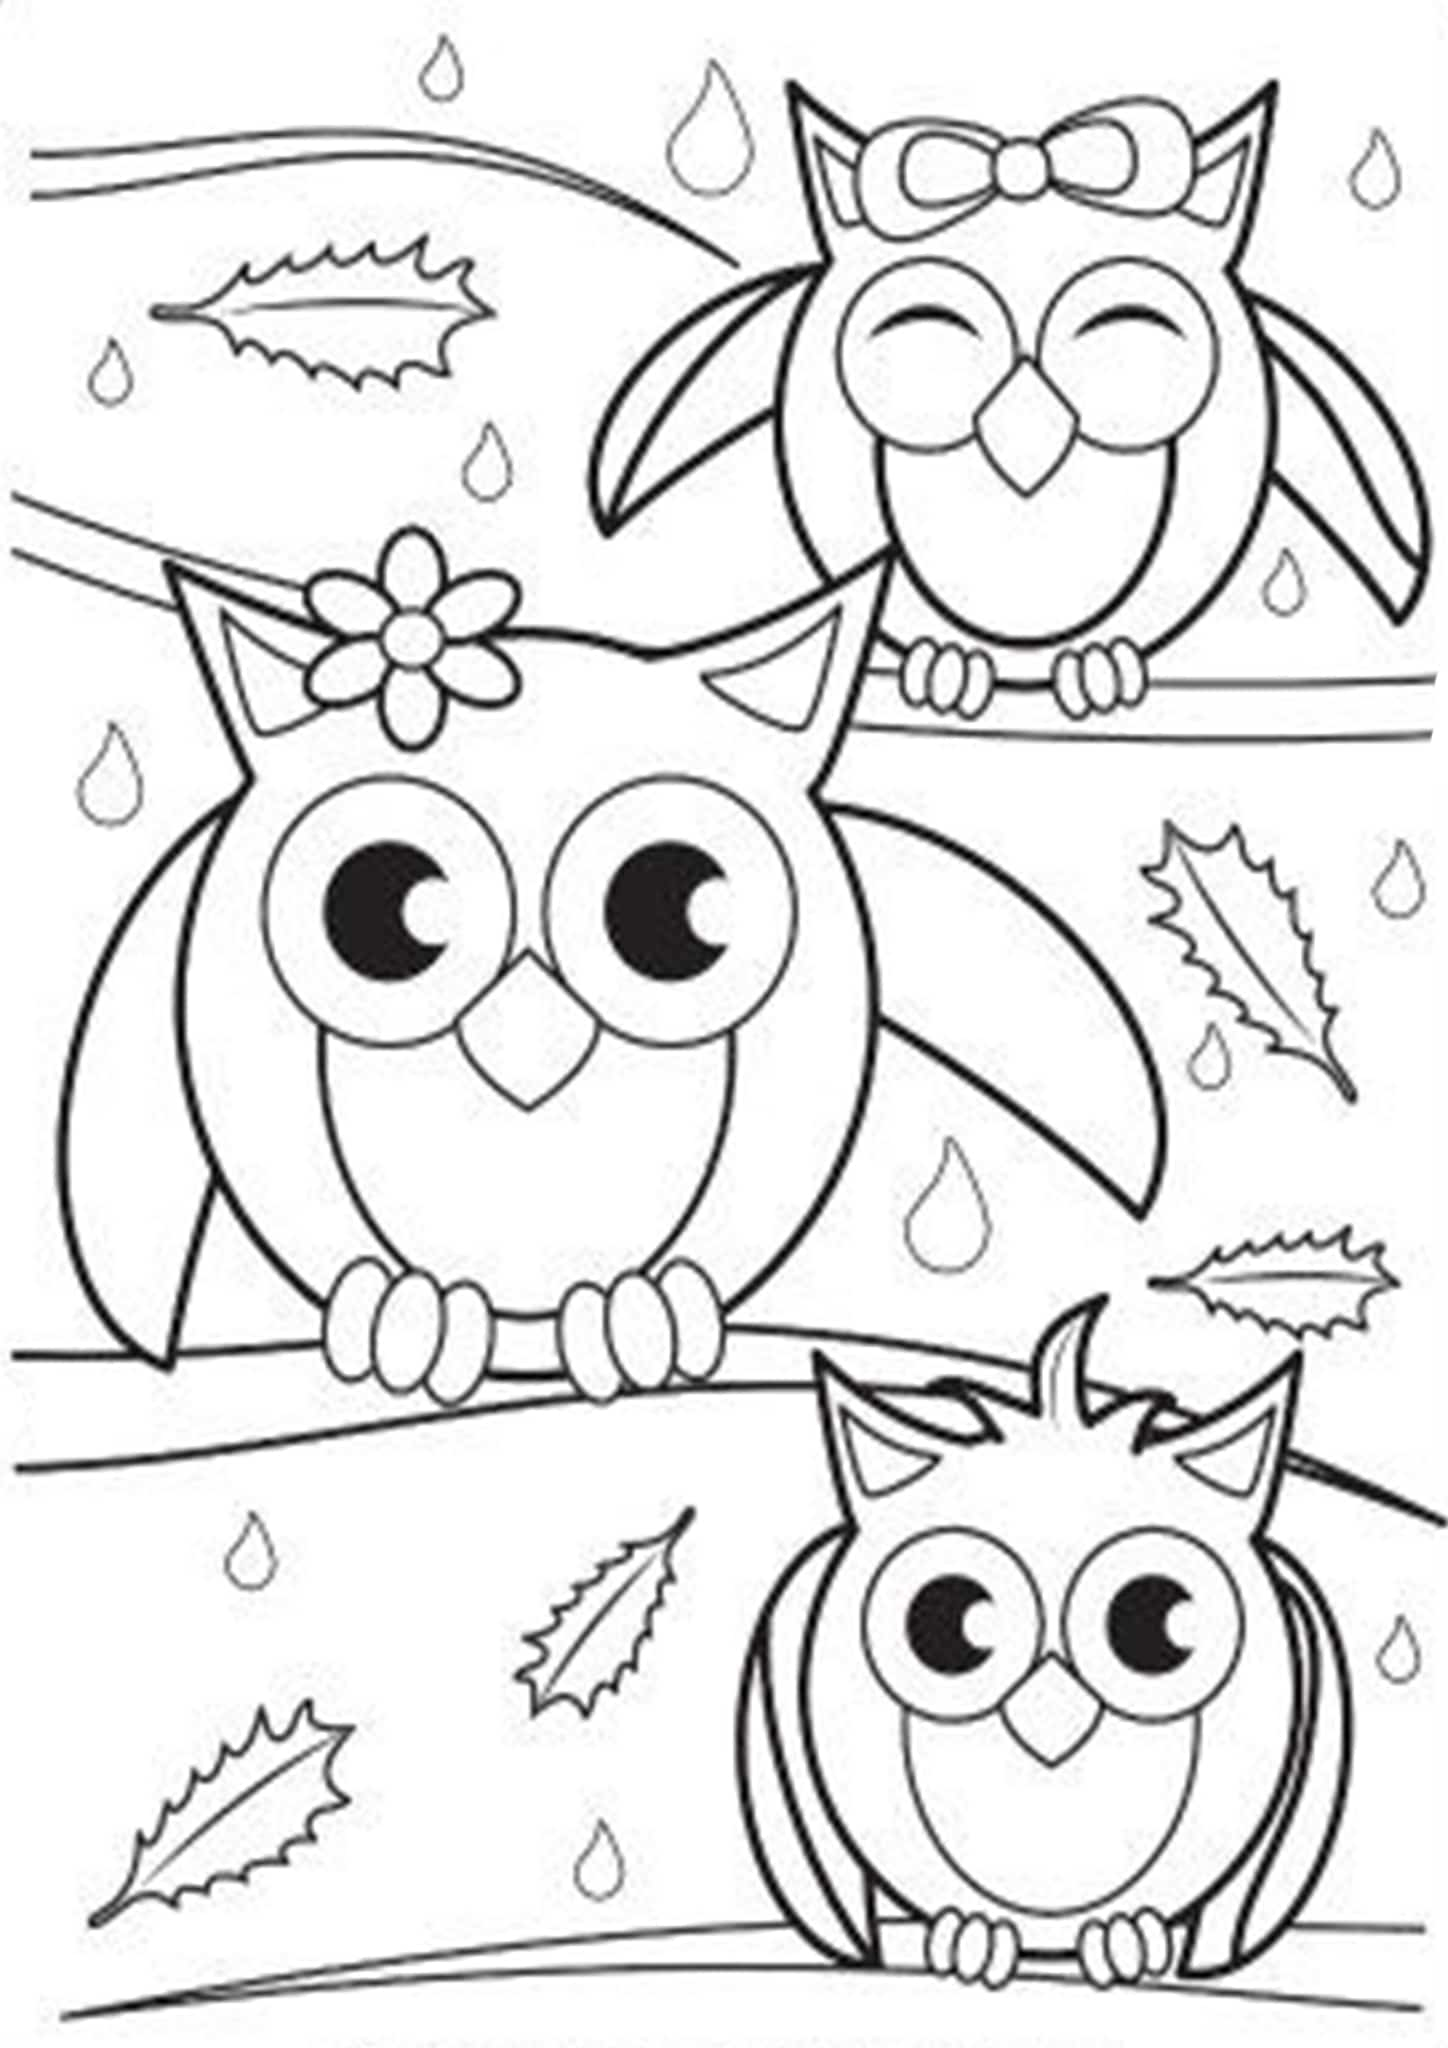 free easy coloring pages simple coloring pages to download and print for free free coloring pages easy